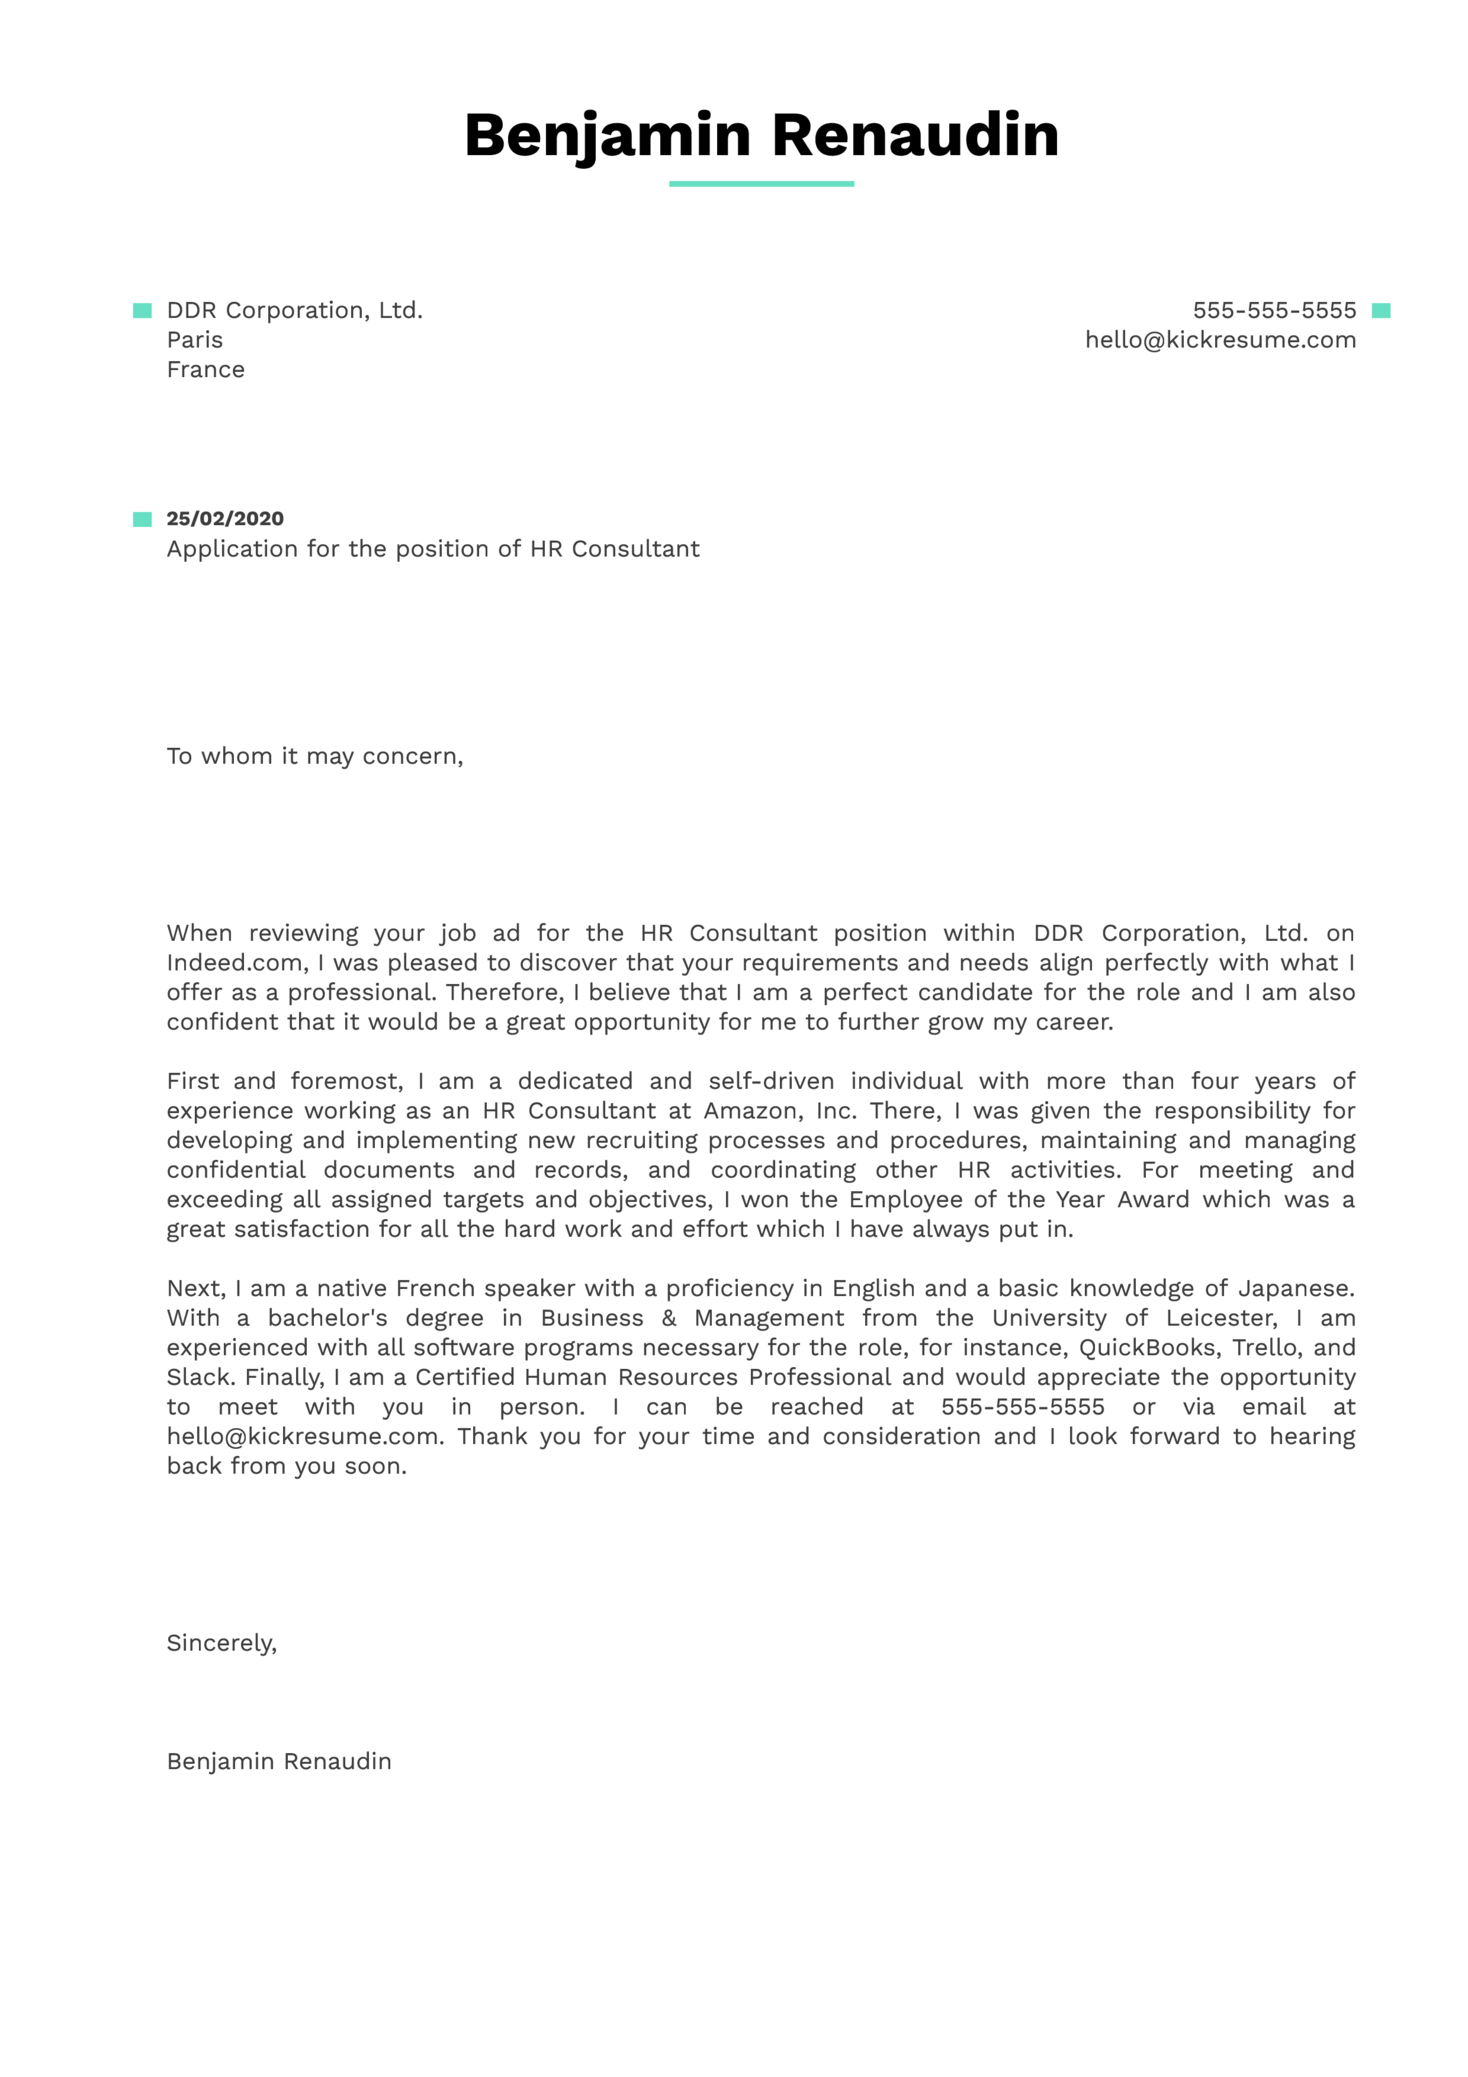 HR Consultant Cover Letter Sample